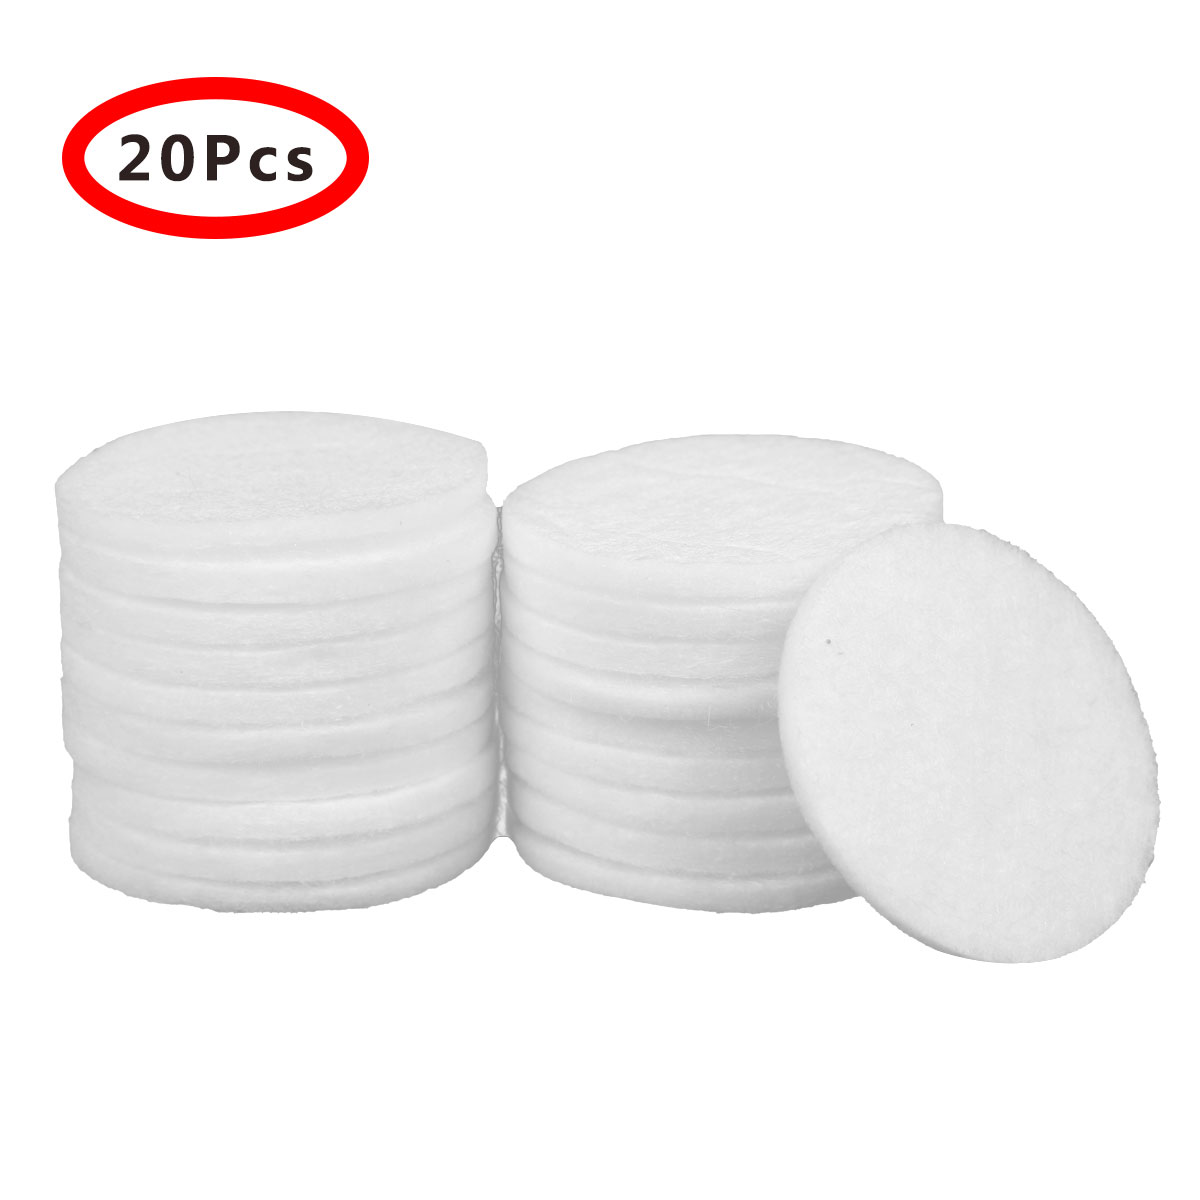 20Pcs Filter Cotton 42mm Safety PP Cottons Replacement for Kitchen Bath Faucet Taps Shower Strainers Paper Bathroom Accessories